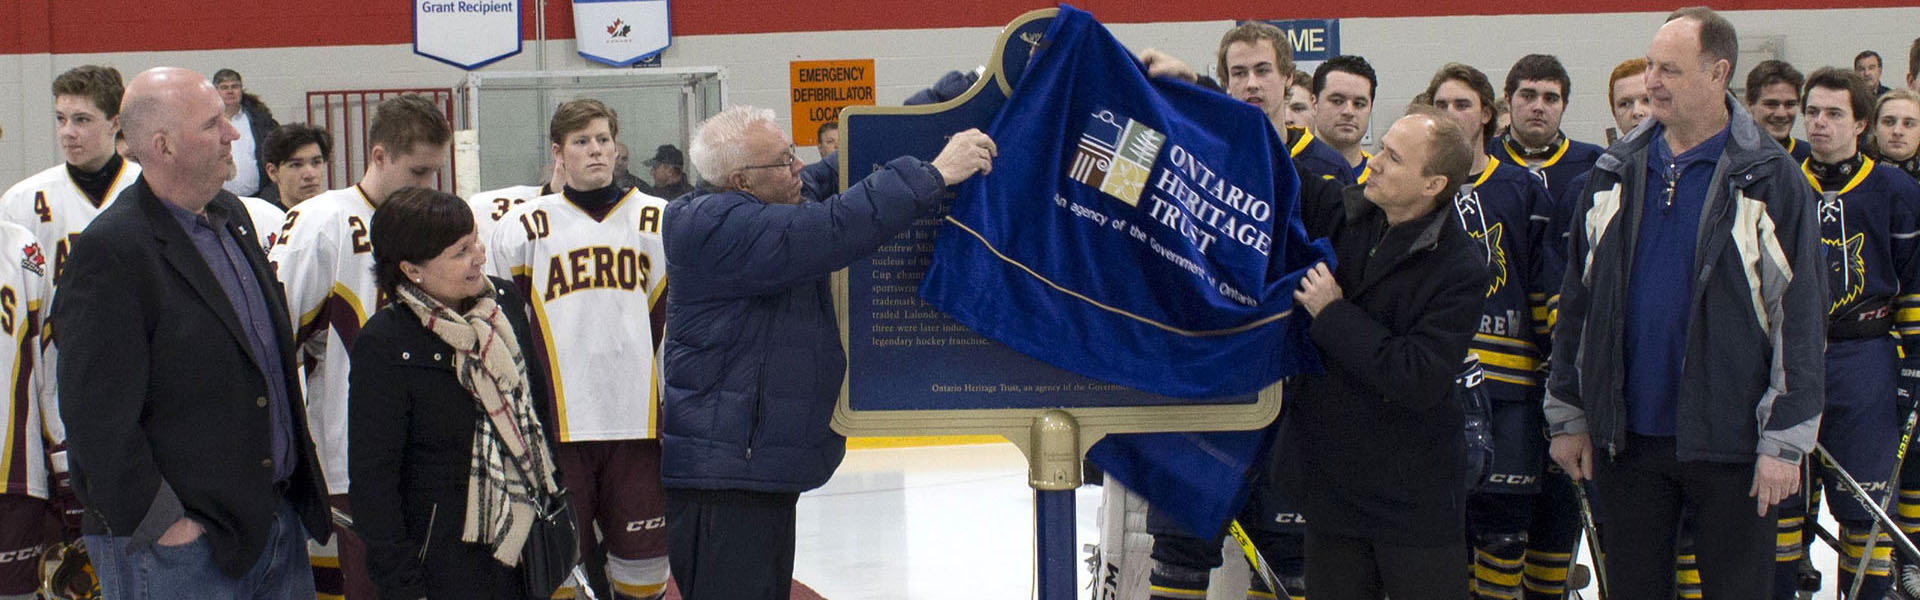 Unveiling of a provincial plaque commemorating Didier Pitre, one of the Flying Frenchmen